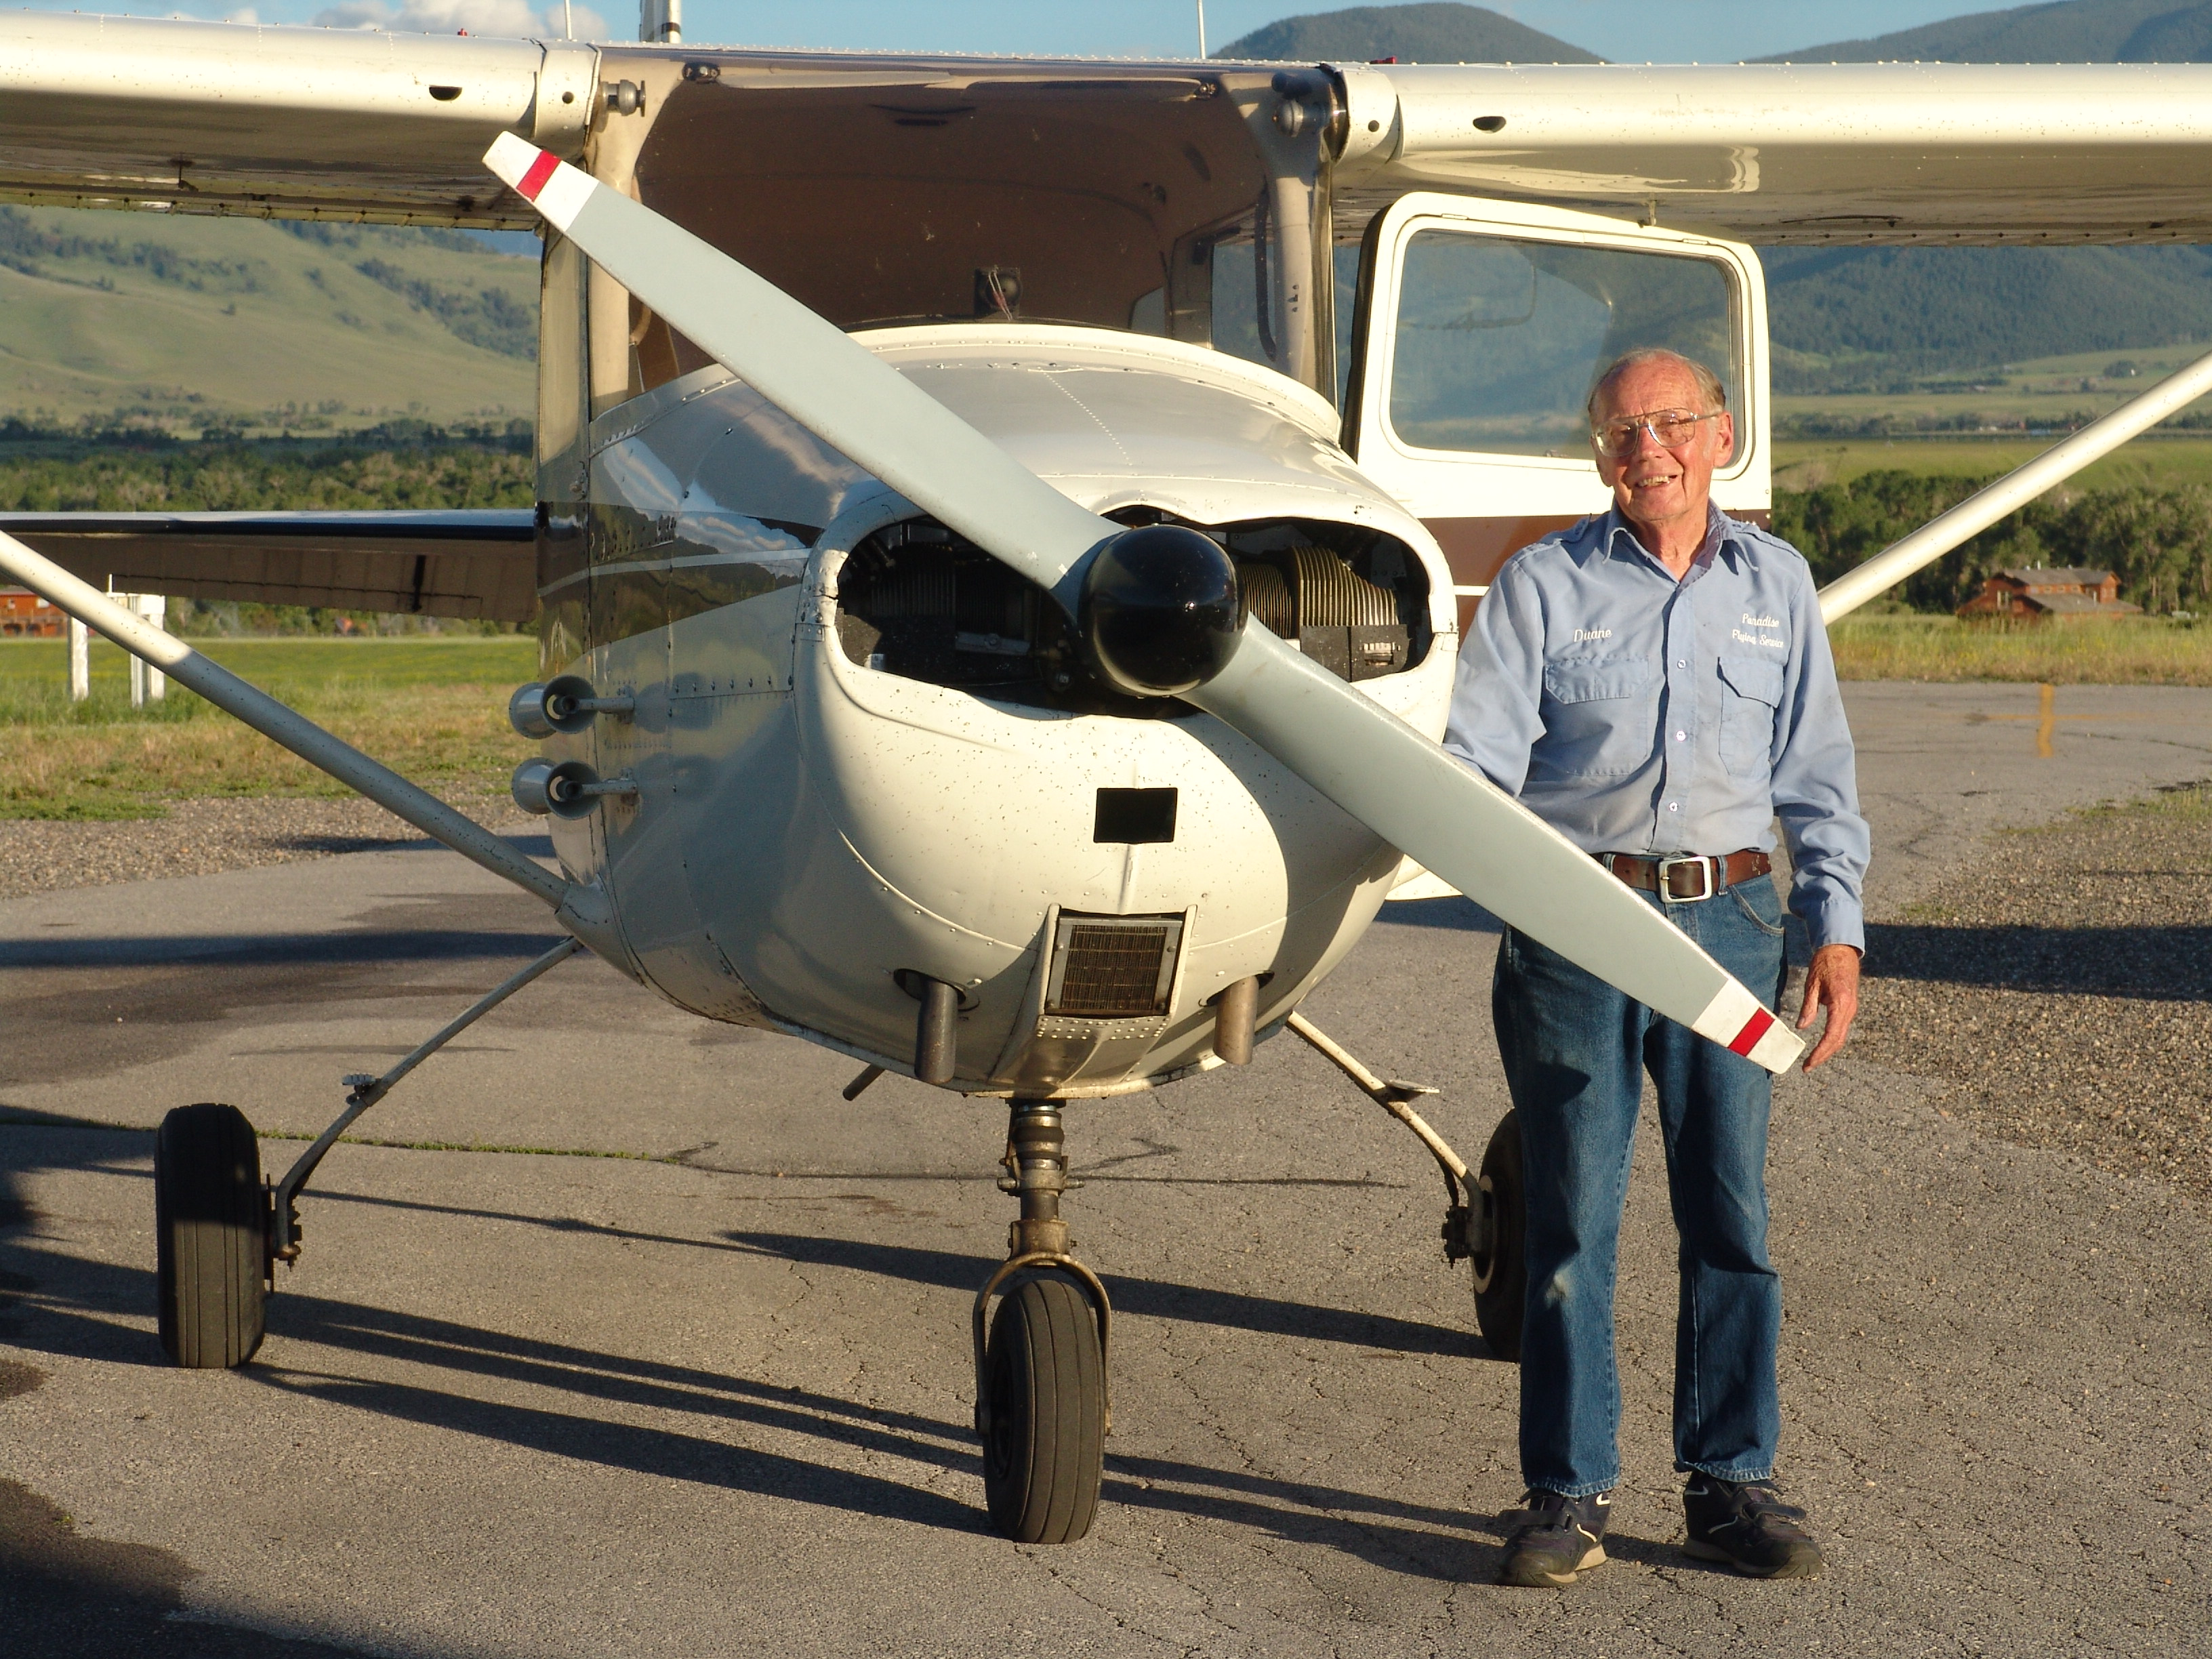 World War II veteran is now a flight instructor